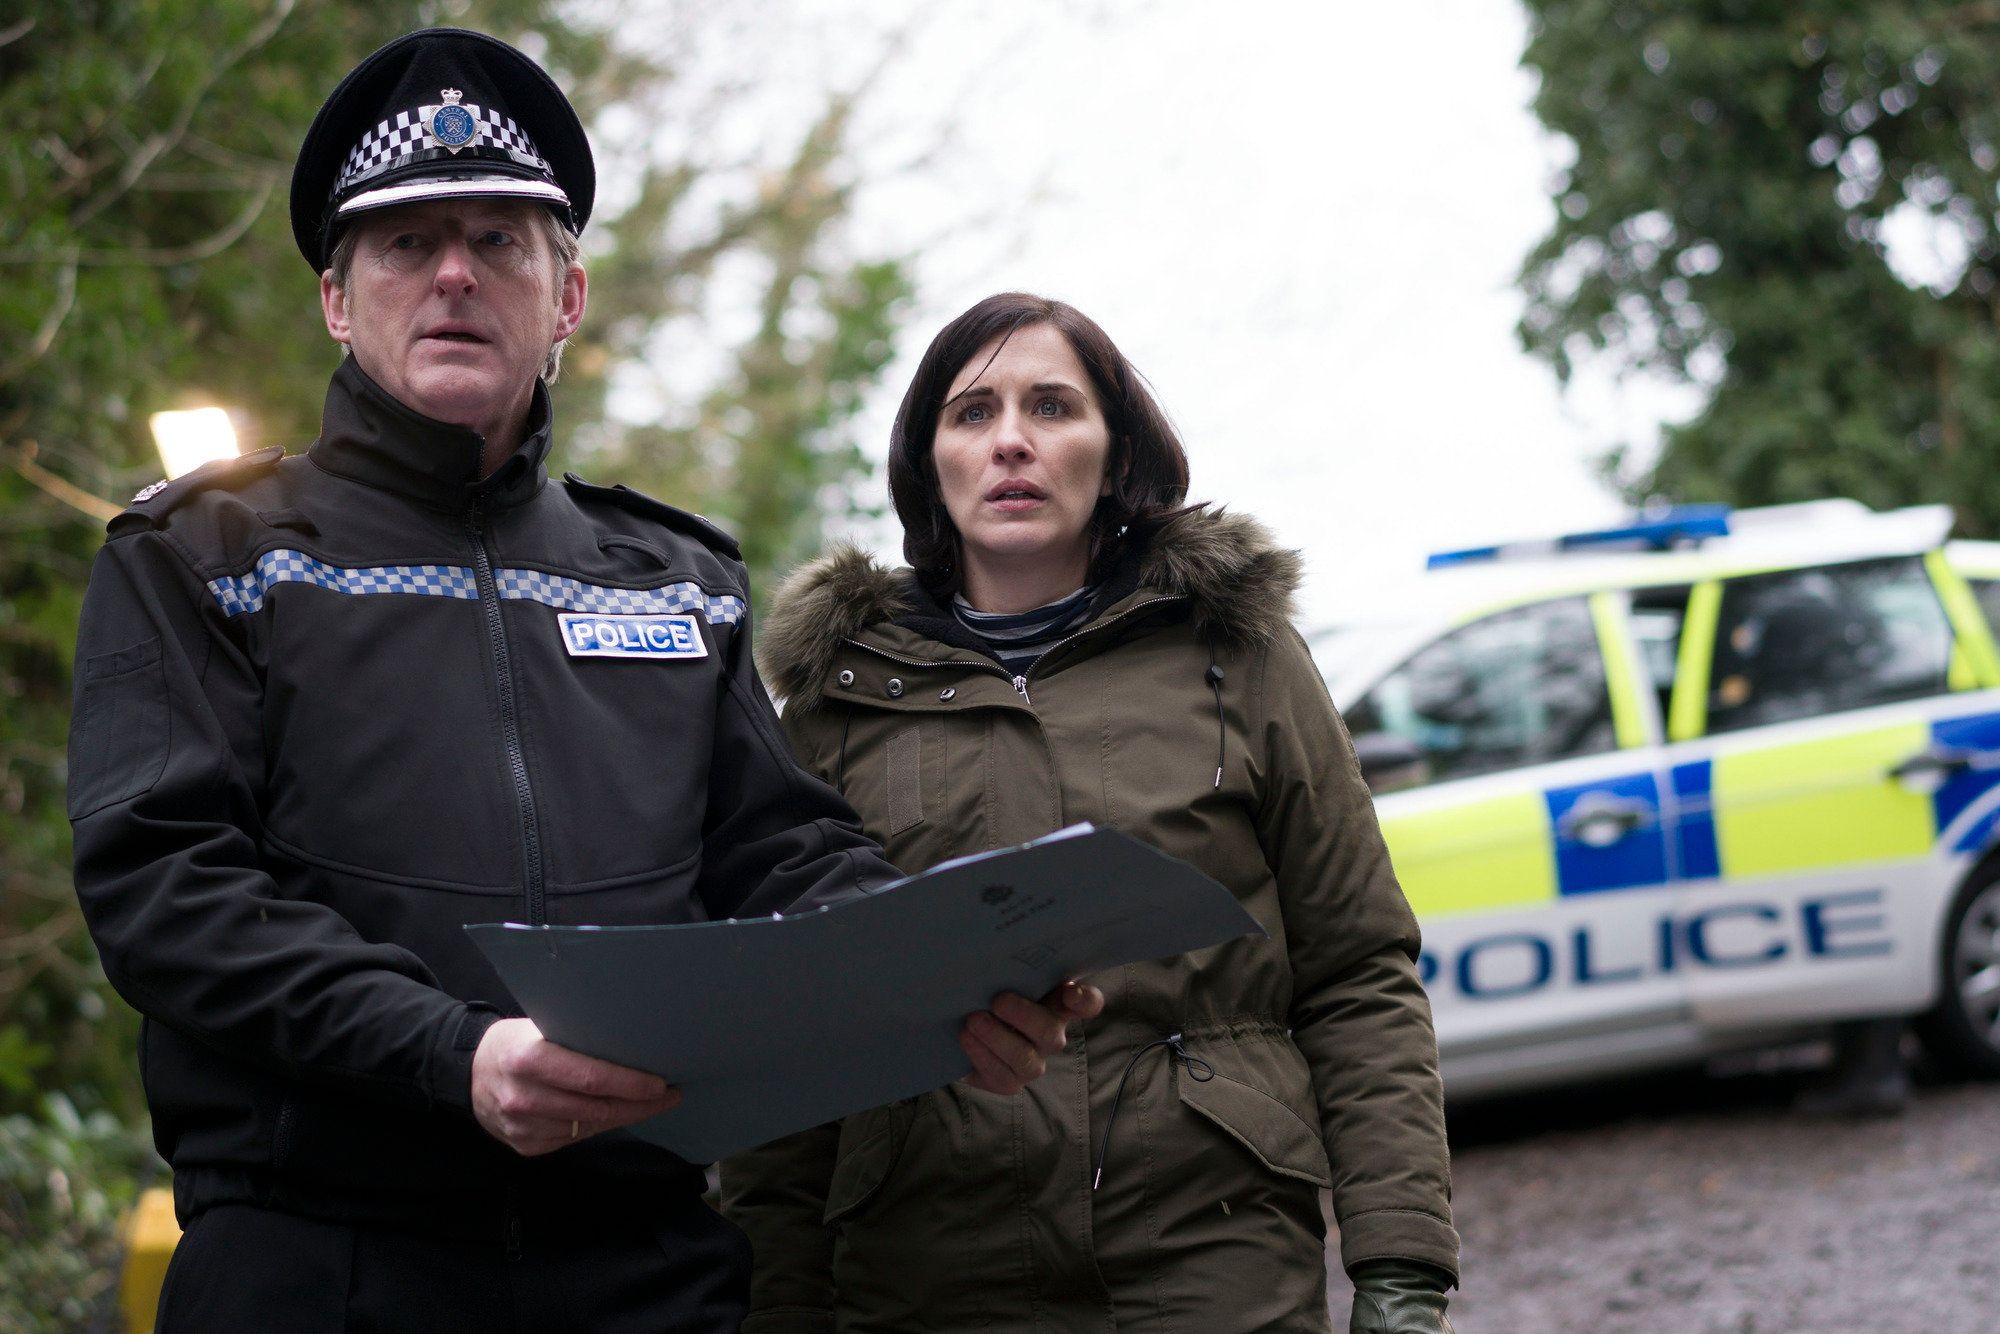 'Line Of Duty': BBC Boss Confirms Police Drama Will Be Back For Two More Series After Scoring Huge Viewing